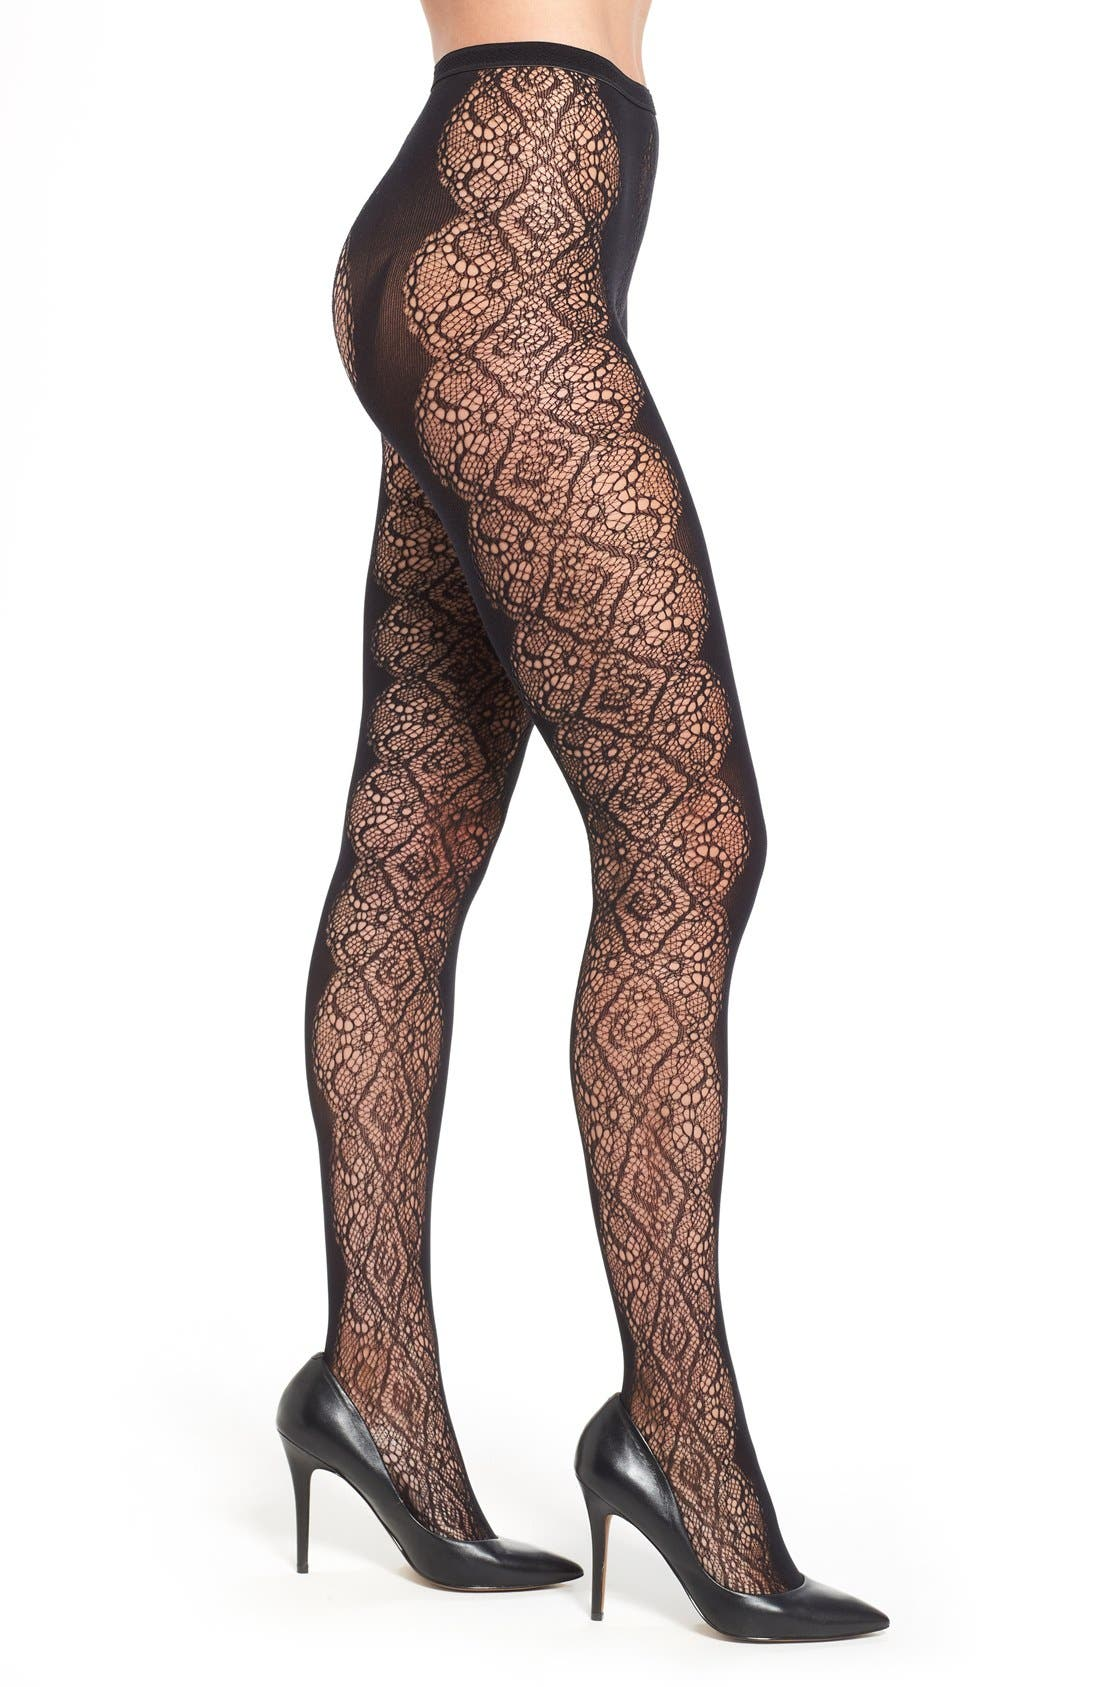 Alternate Image 1 Selected - Nordstrom Scallop Lace Tights